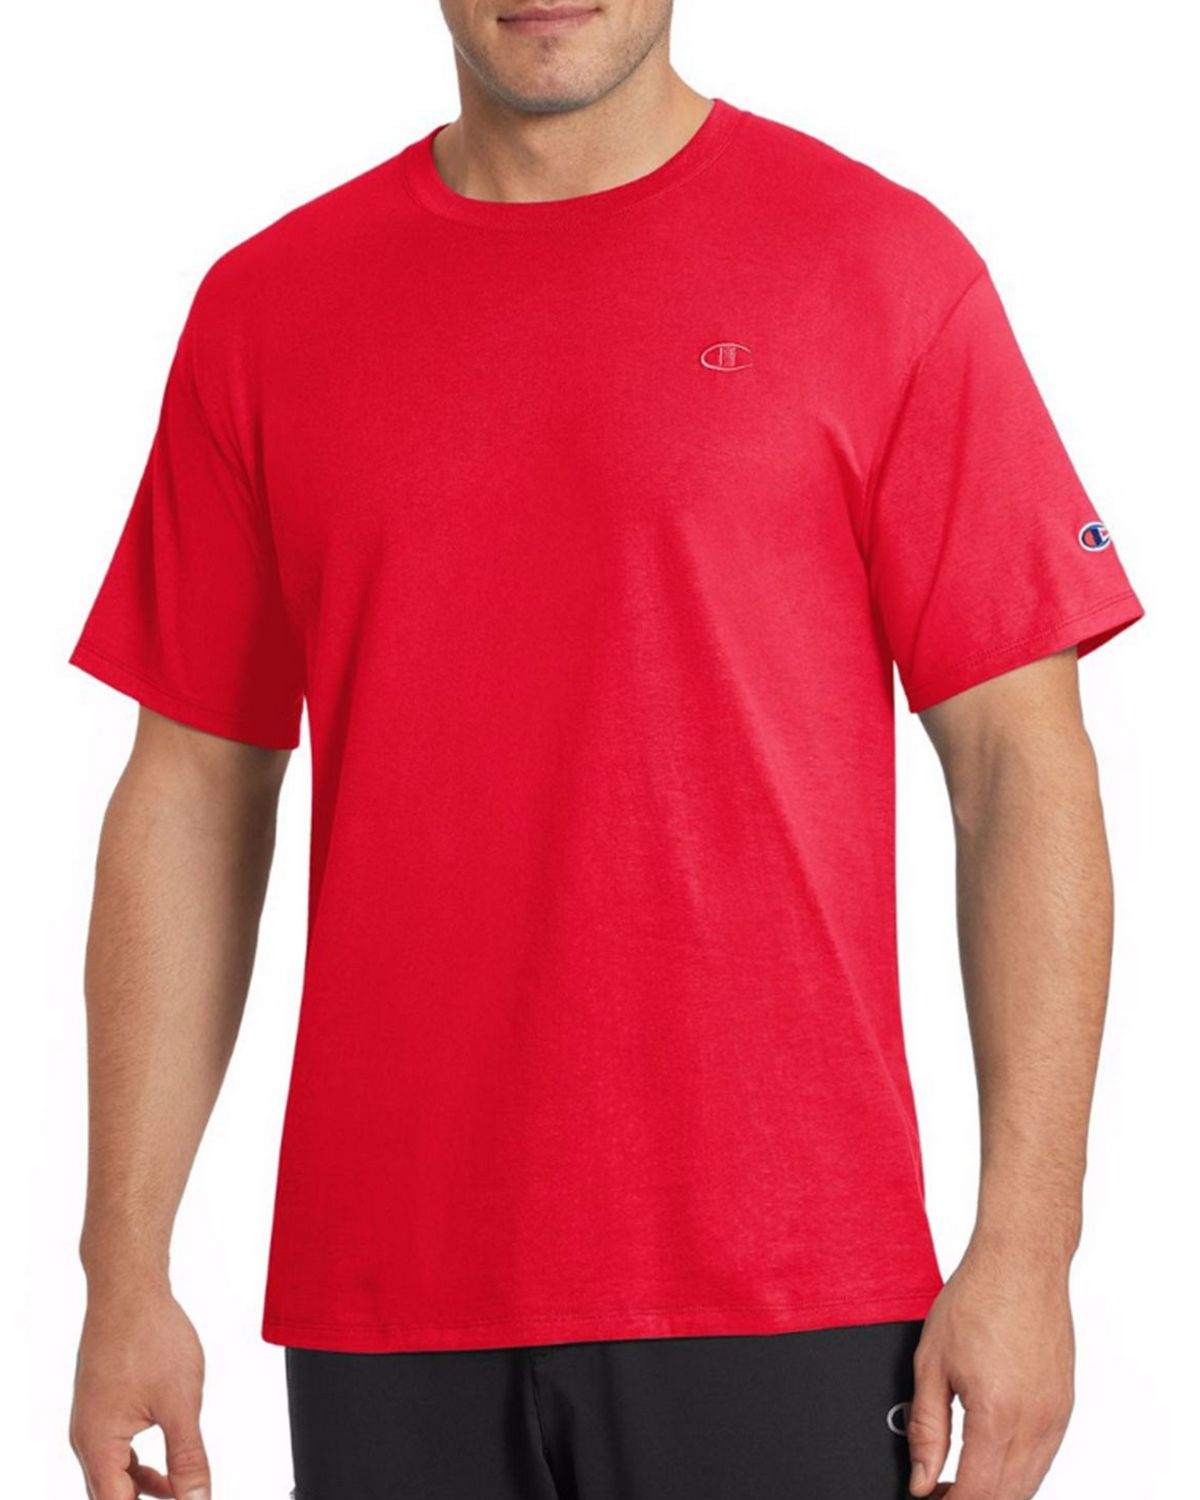 Champion T0223 Mens Jersey Tee - Surf The Web - XL T0223